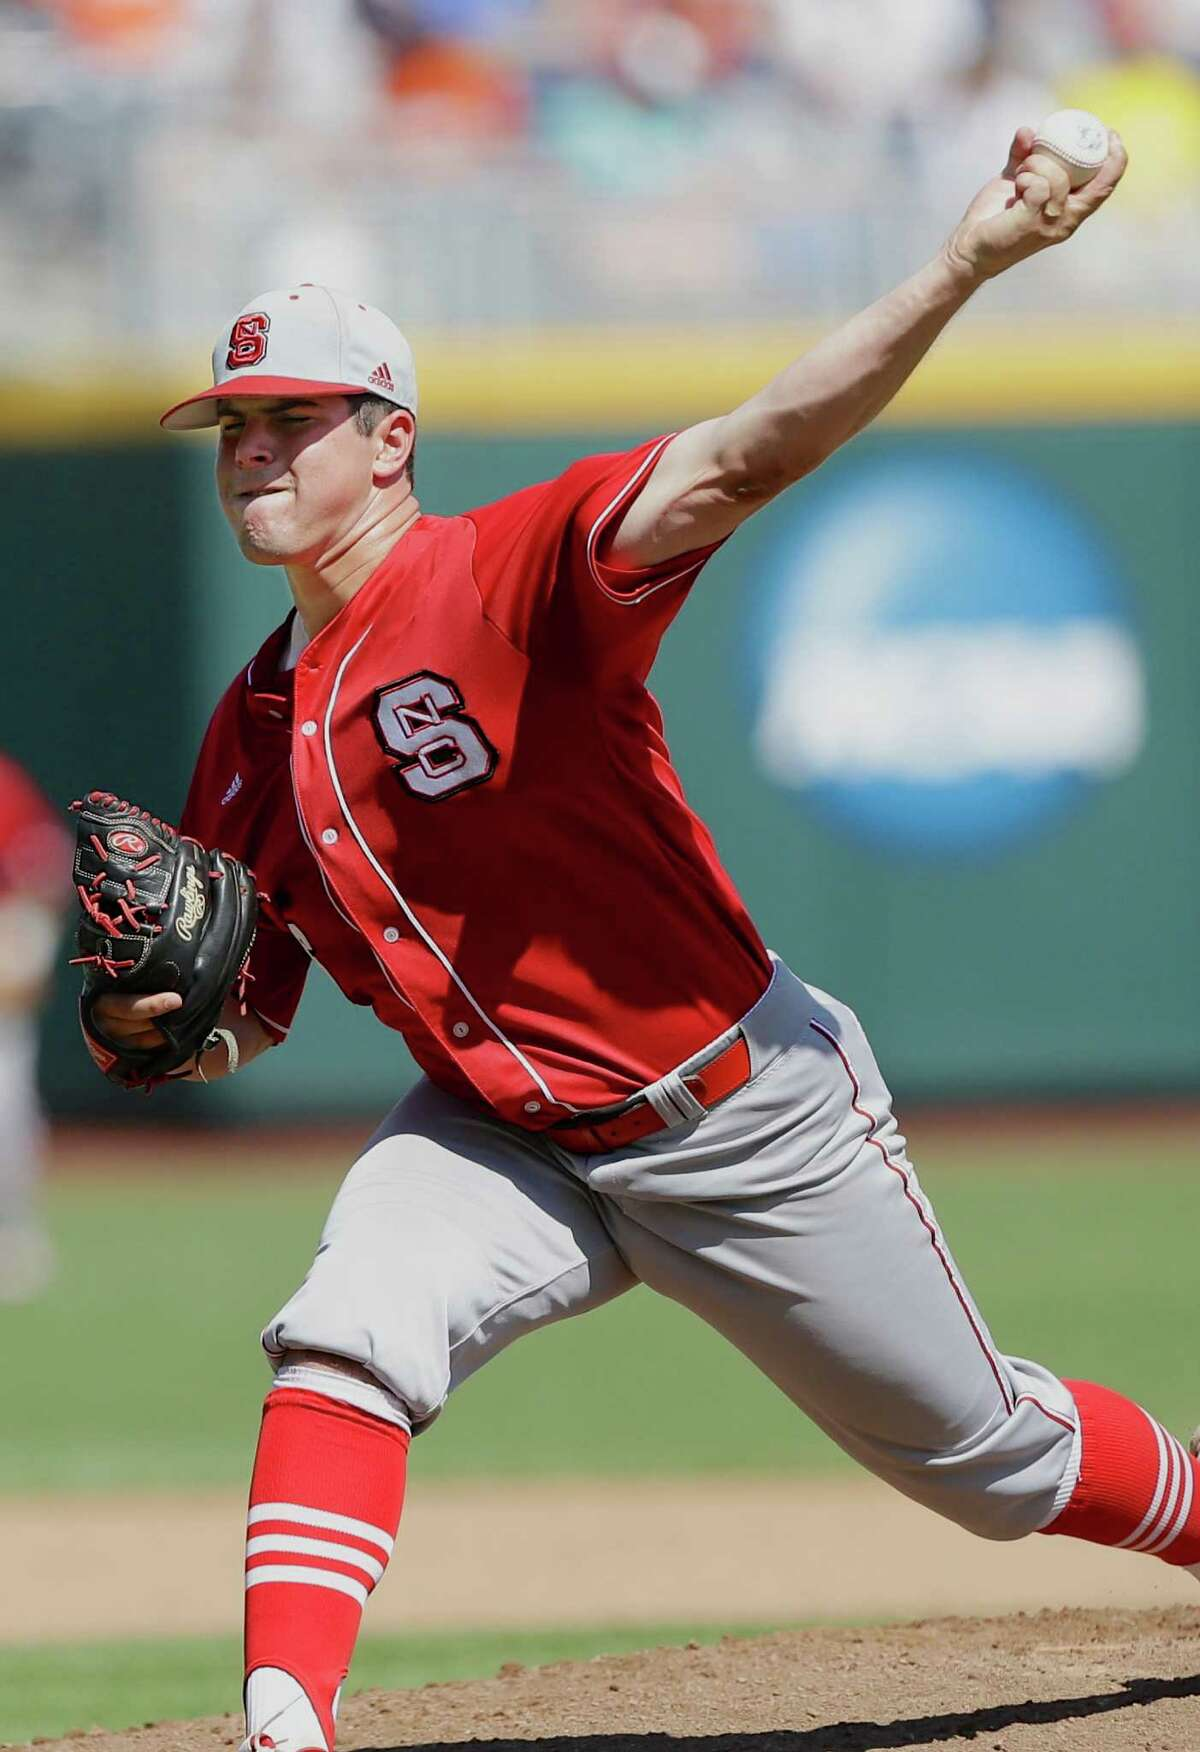 Hard-throwing North Carolina State lefthander Carlos Rodon is considered the top candidate to be selected with the No. 1 overall pick in next year's MLB draft by the Astros, although a few high schoolers and even a teammate of his could bump him from the top spot by the time June rolls around.